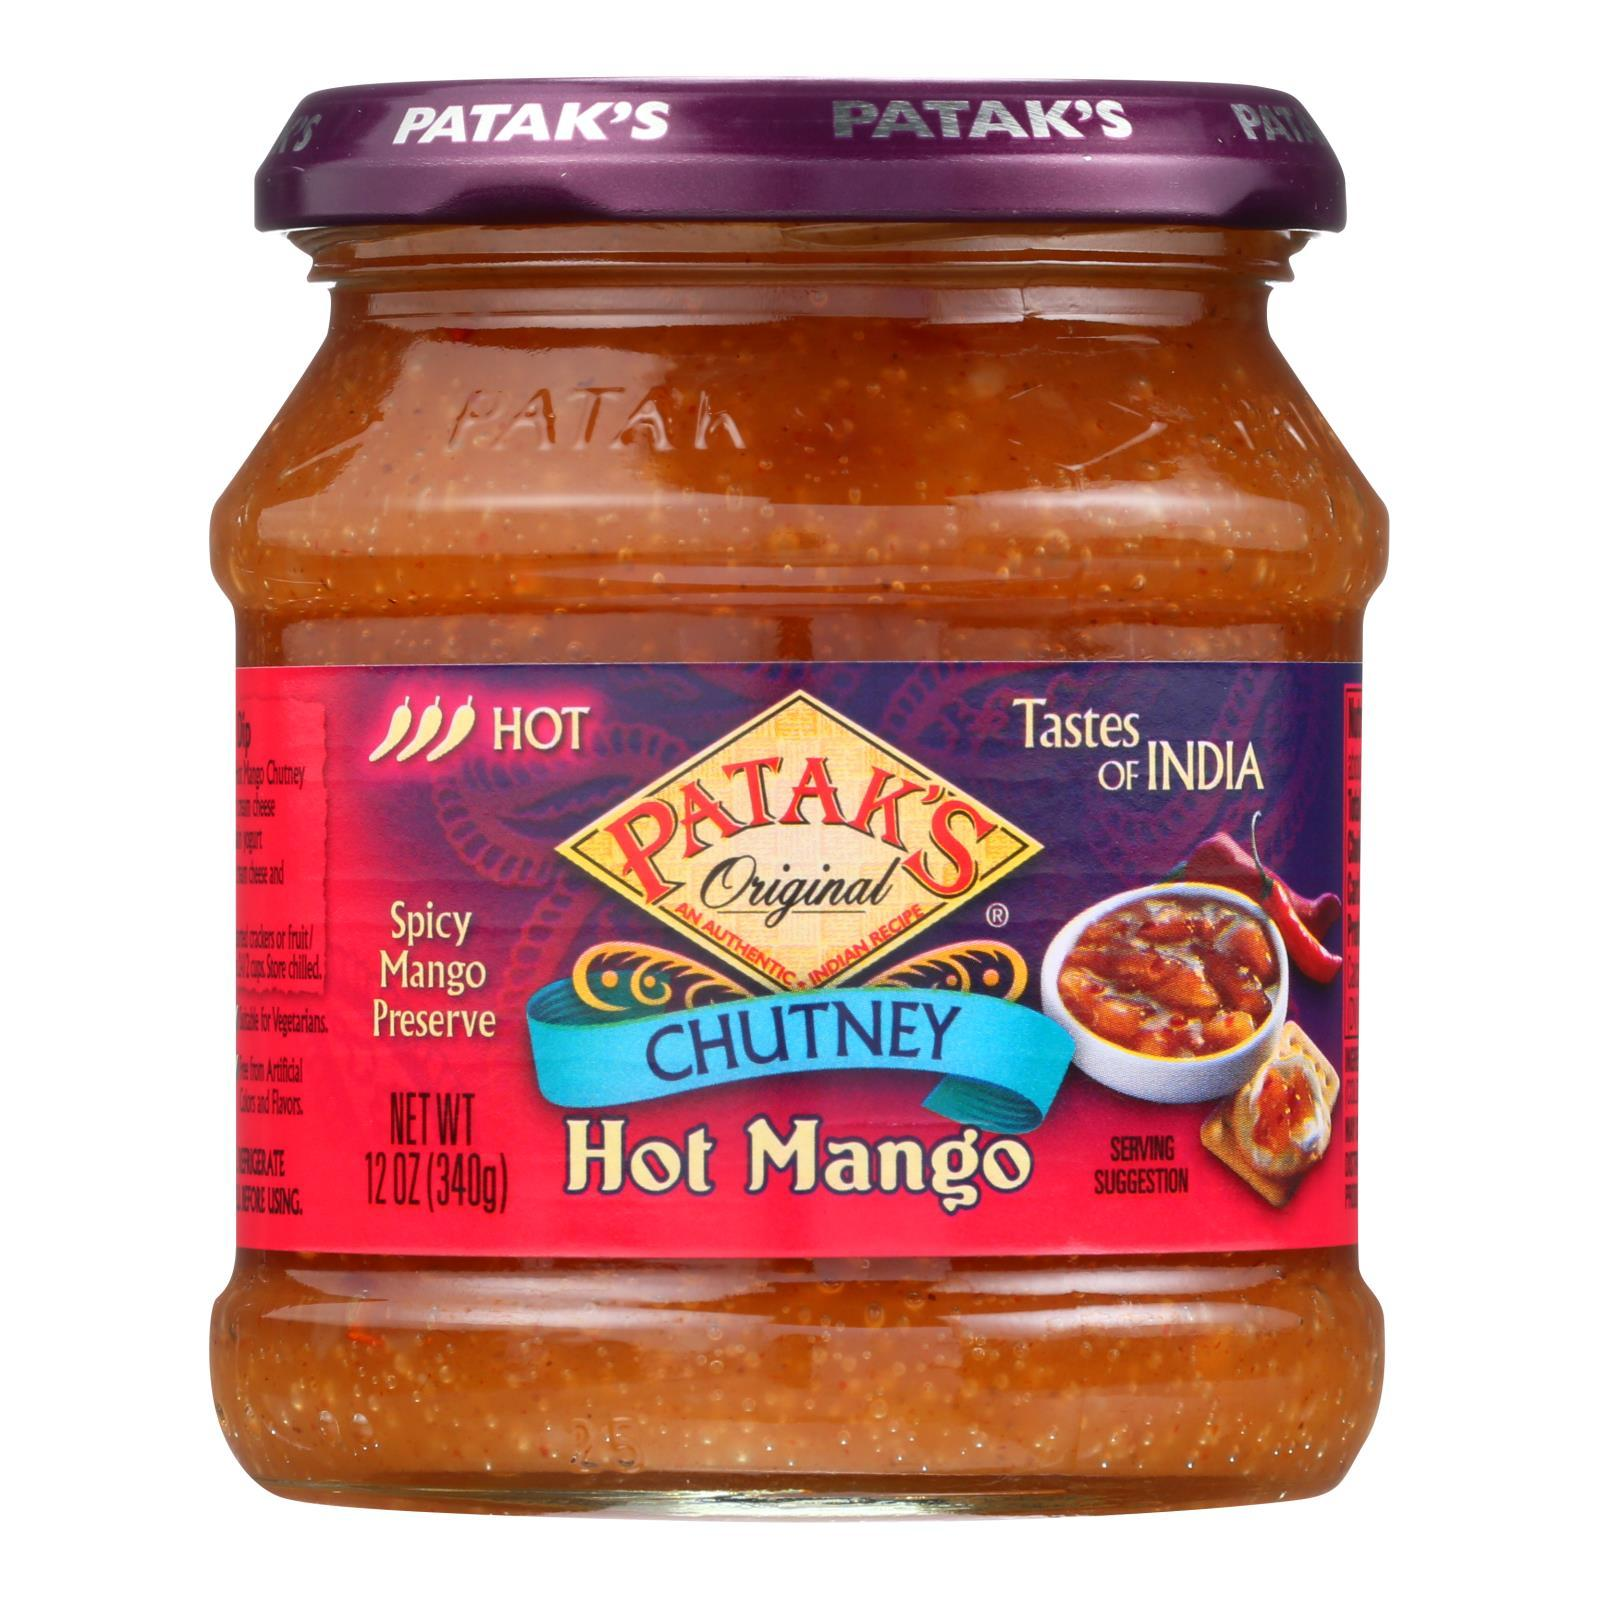 Pataks Chutney - Hot Mango - Hot - 12 Oz - Case Of 6 - BeeGreen